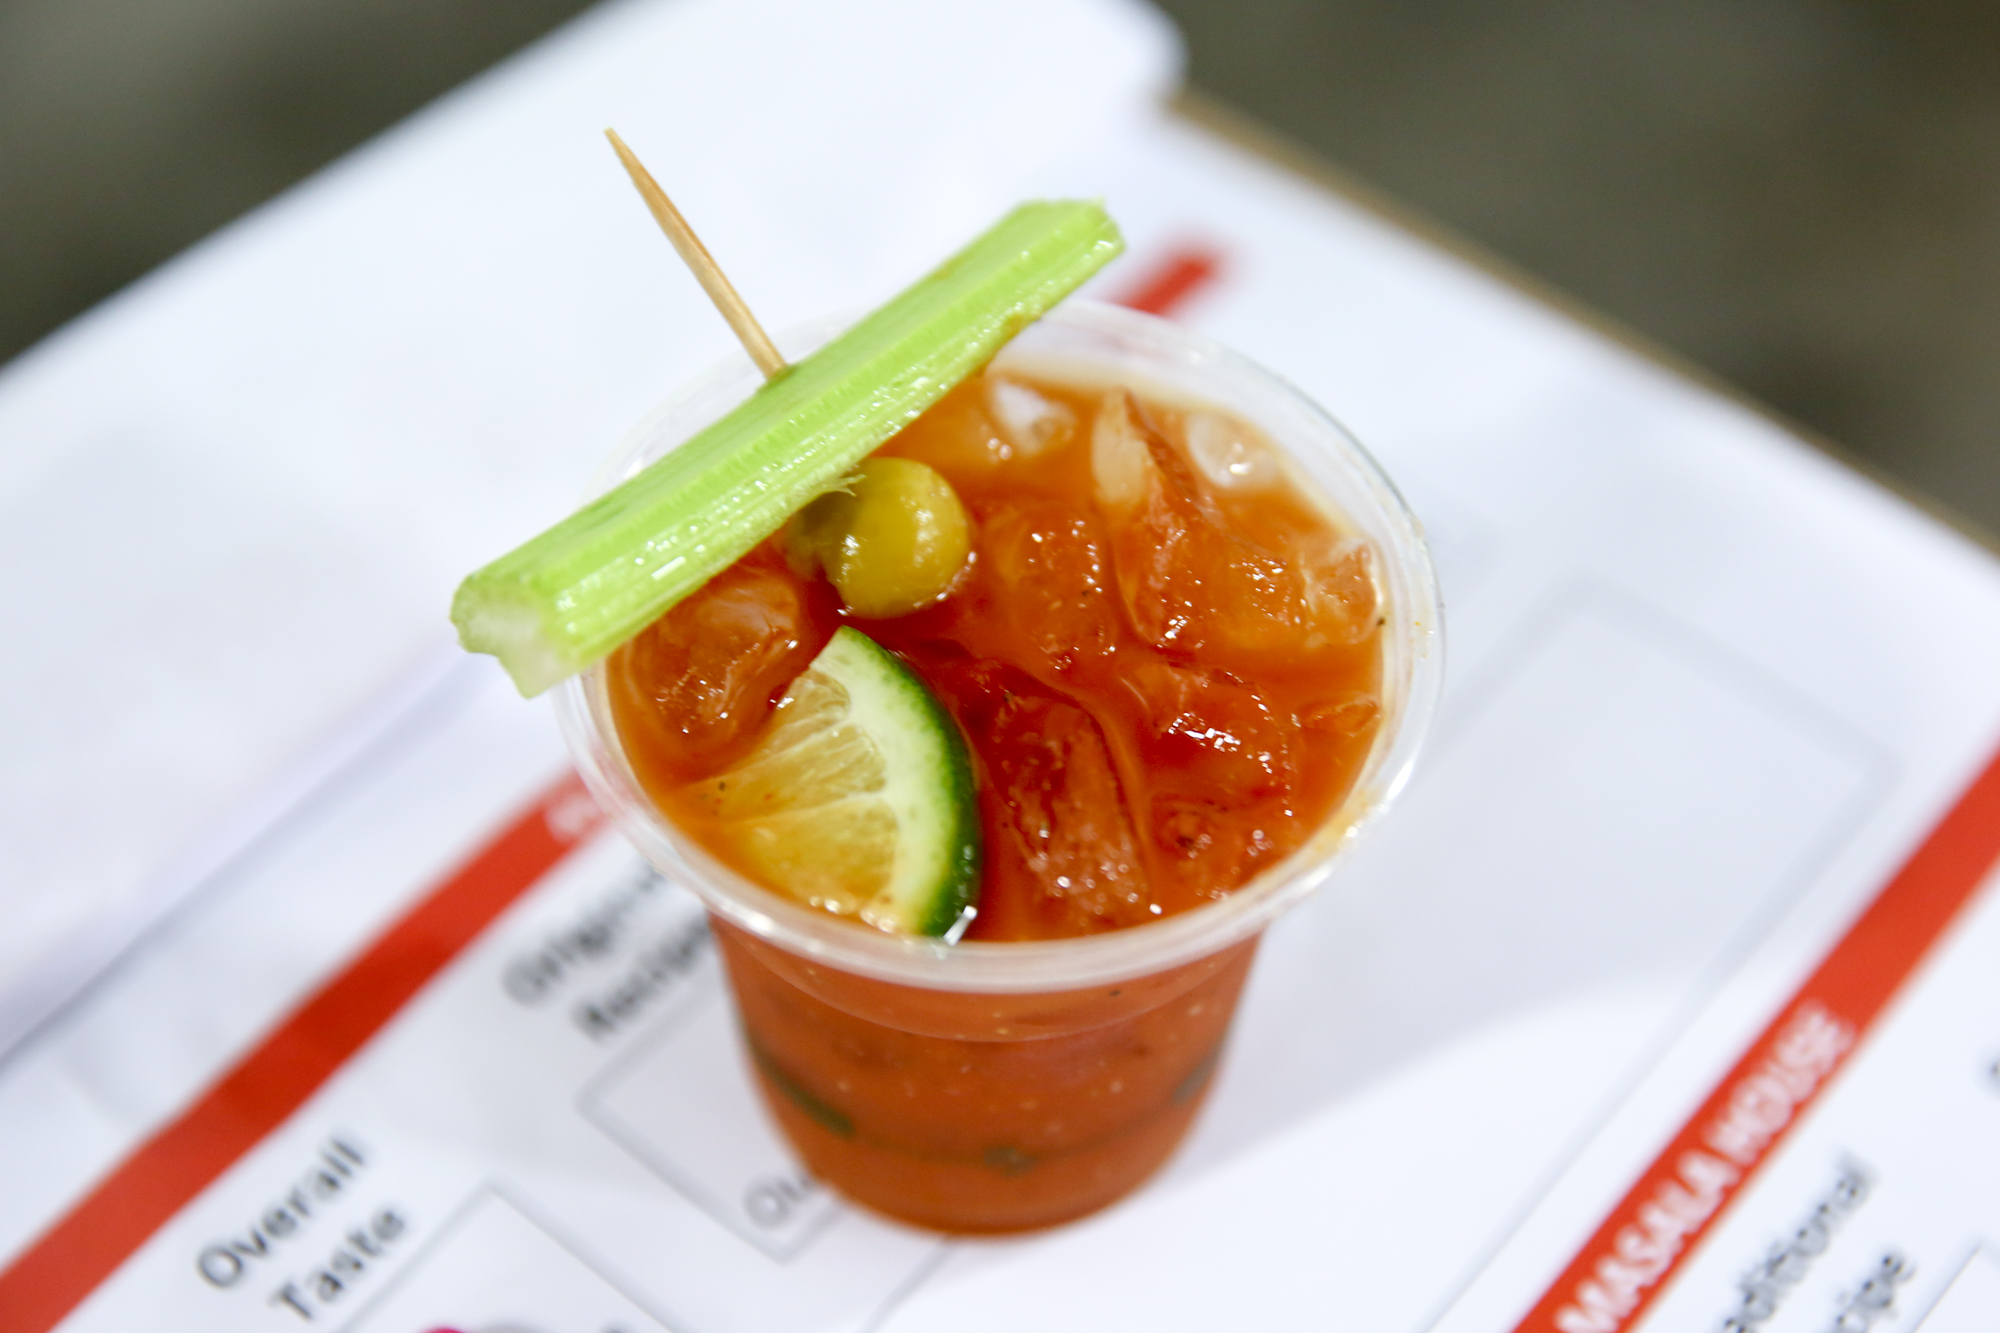 417 Union Nashville, Bloody Mary Festival 23.jpg